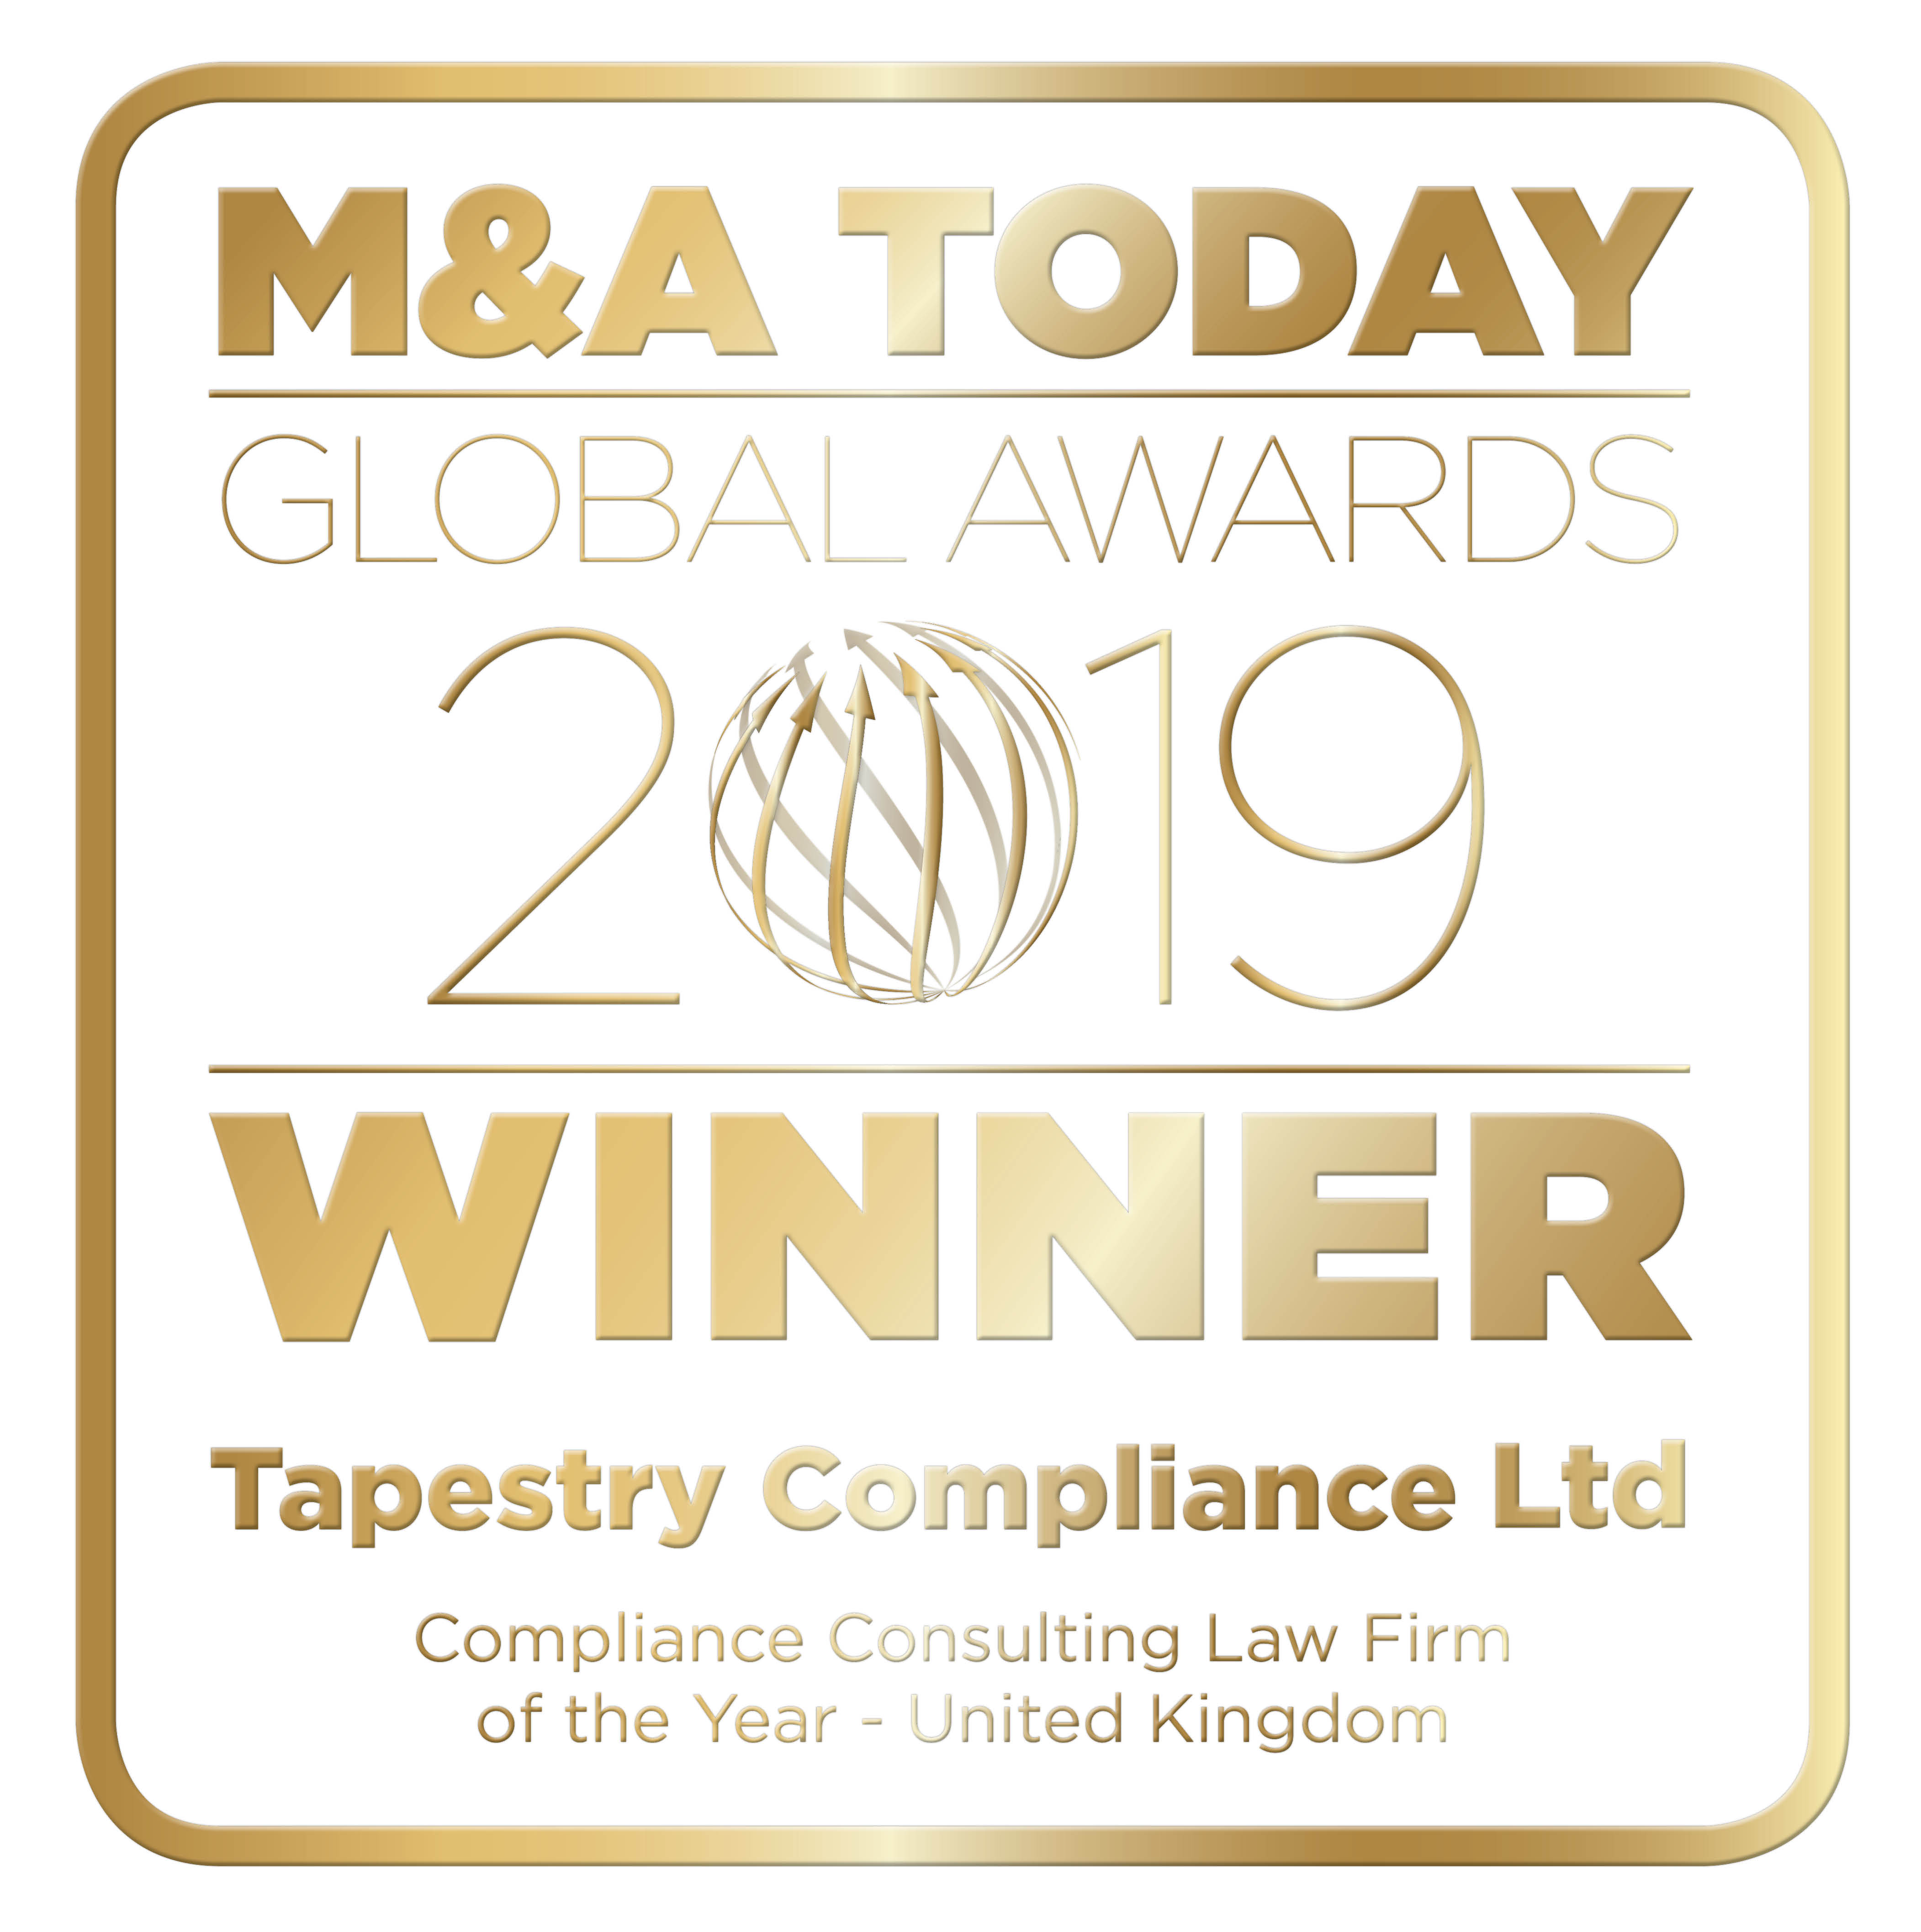 M&A Today Global Awards 2019 logo_Tapestry Compliance Ltd_v2